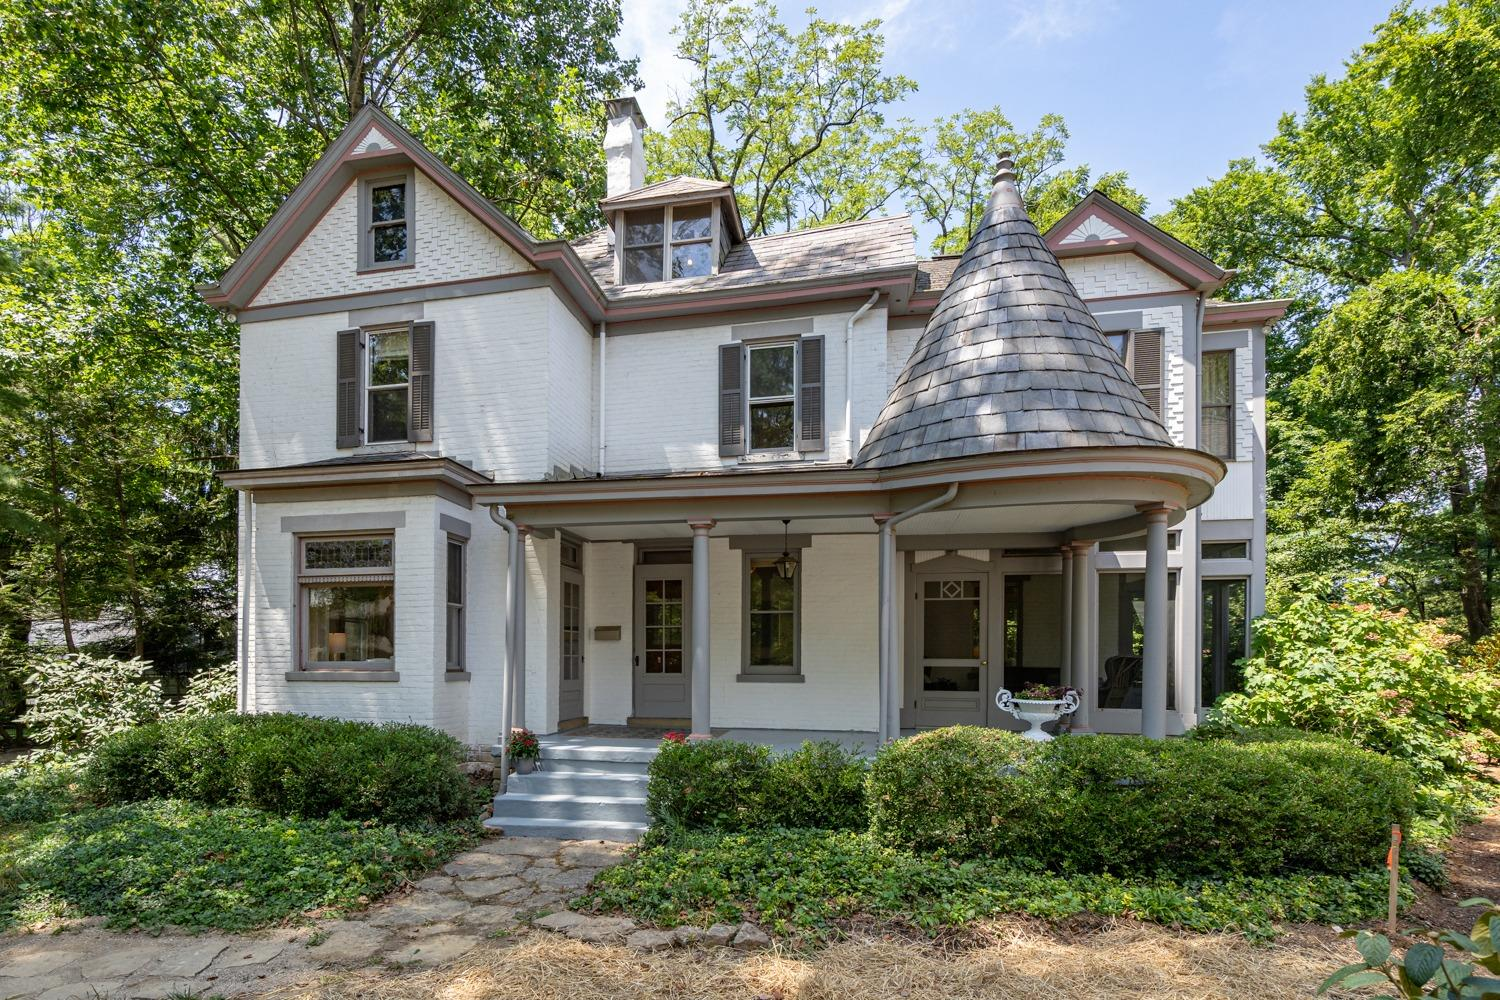 Property for sale at 3921 East Street, Mariemont,  Ohio 45227